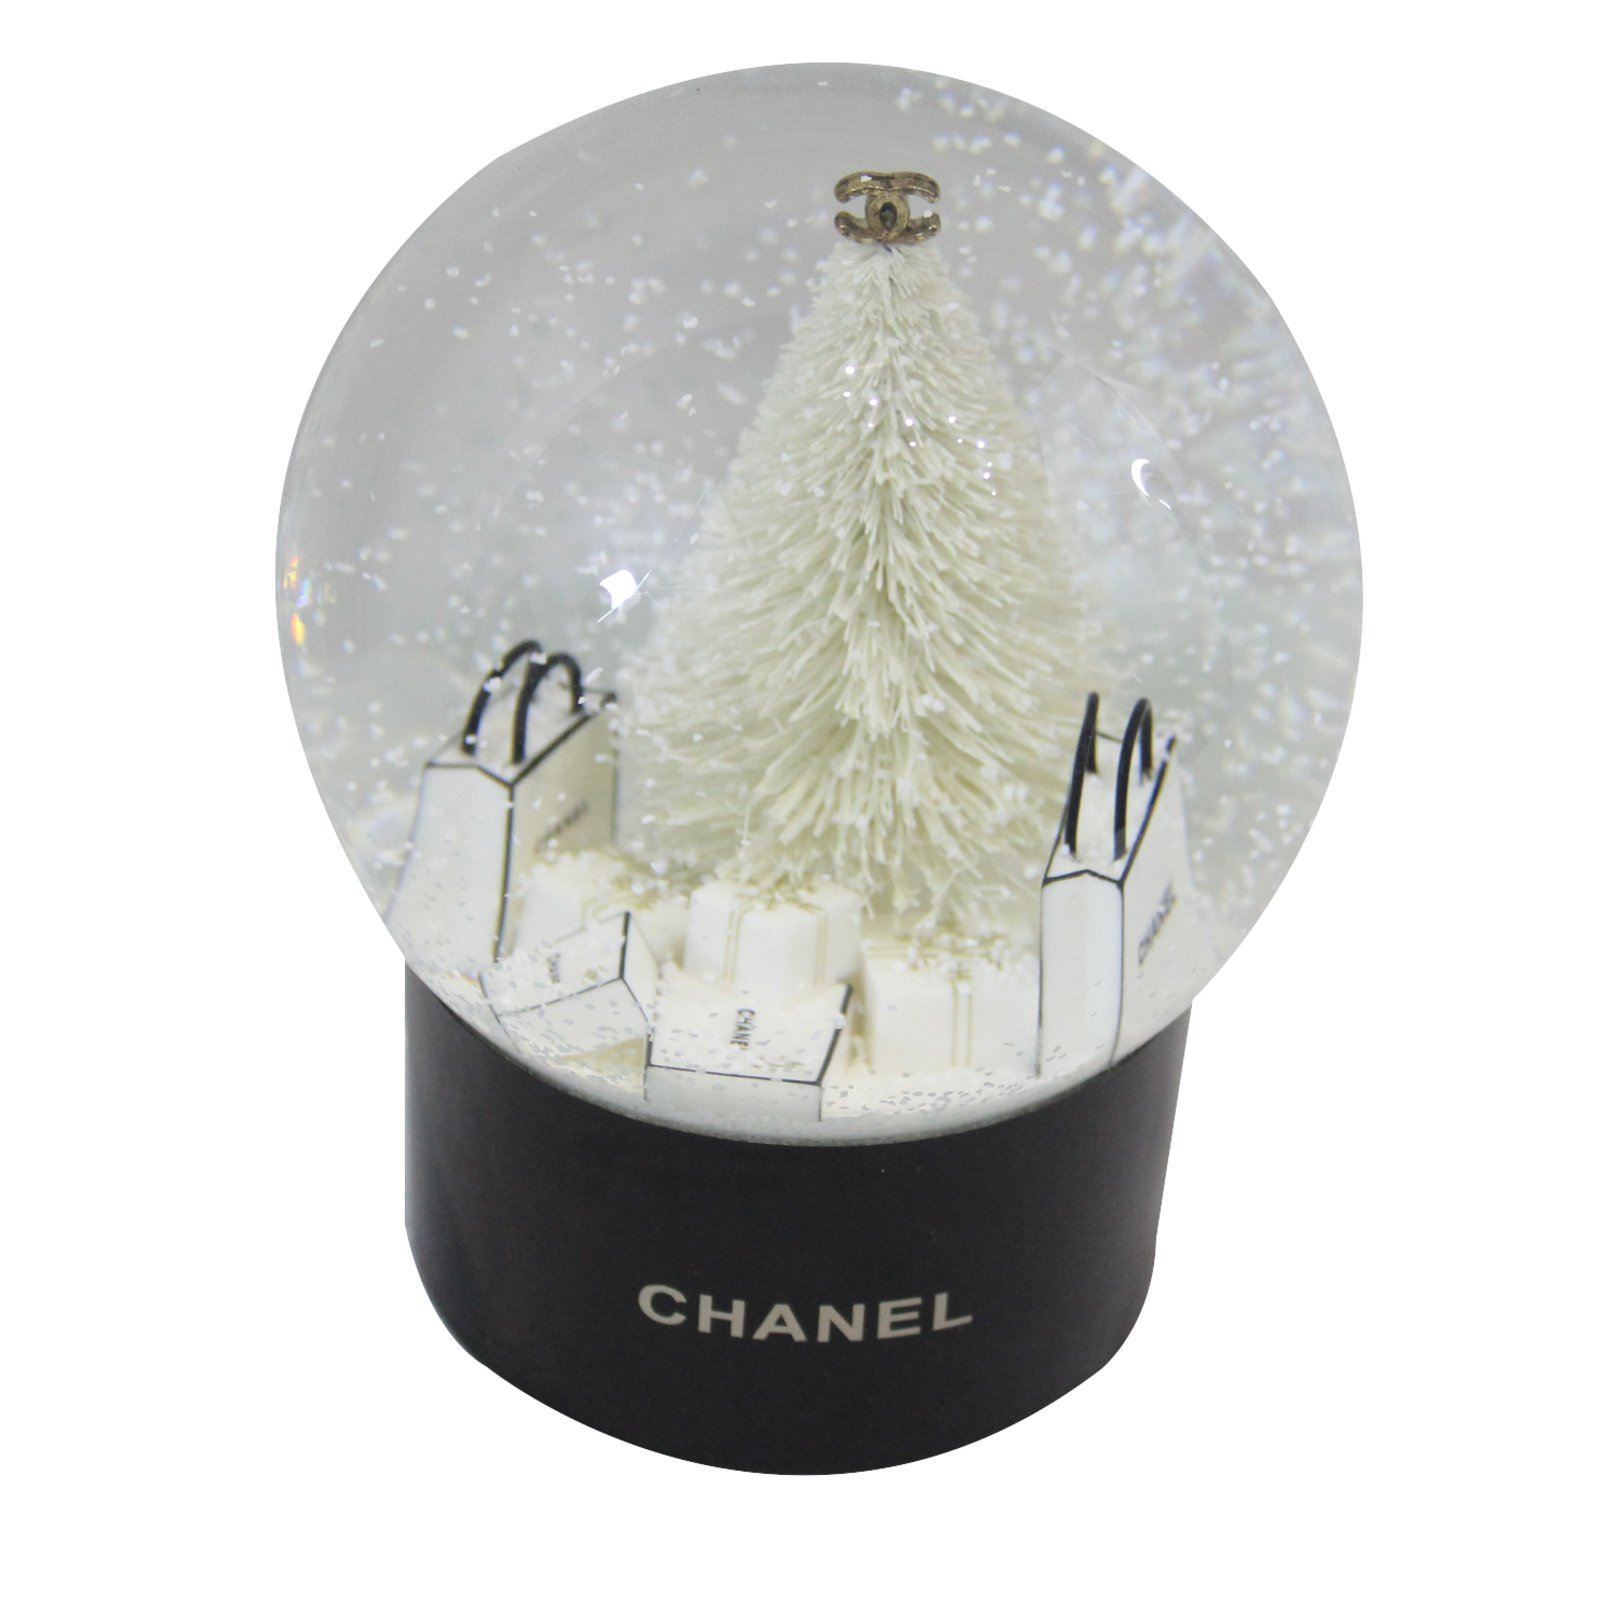 41e1f244d68e Décoration divers Chanel Boule à neige Synthétique Multicolore ref.25894